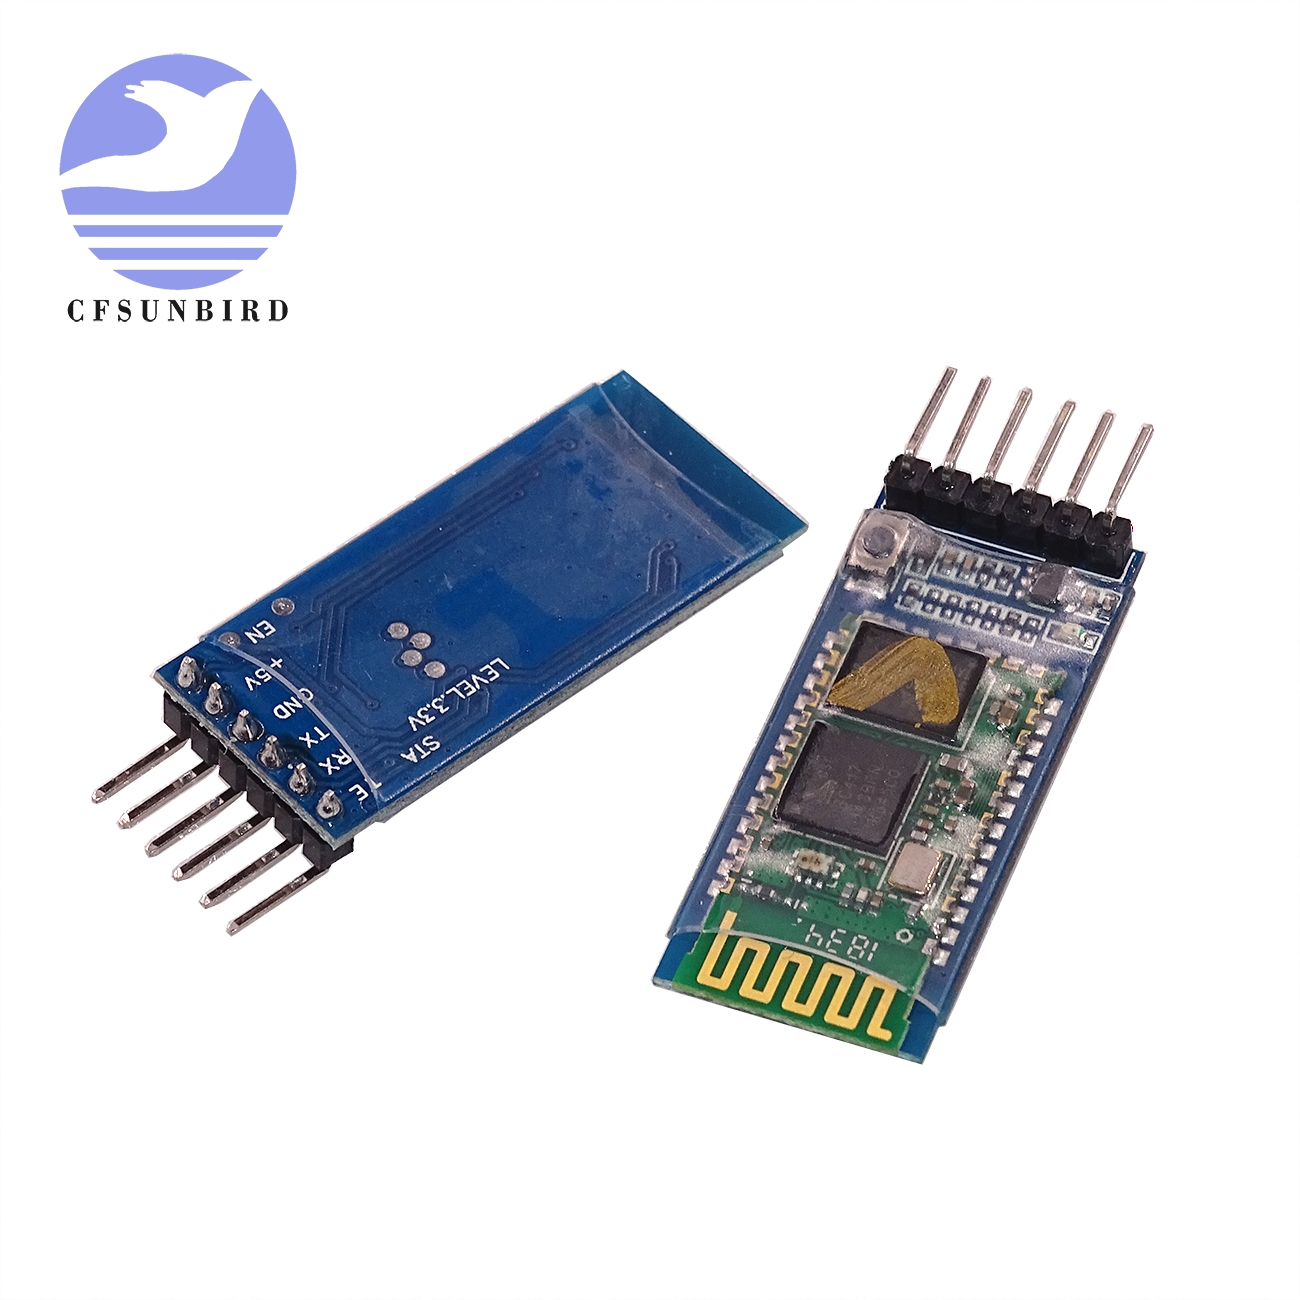 free shipping 20pcs/lot HC05 HC 06 JY MCU anti reverse, integrated Bluetooth serial pass through module, HC 05 master slave 6pin-in Integrated Circuits from Electronic Components & Supplies